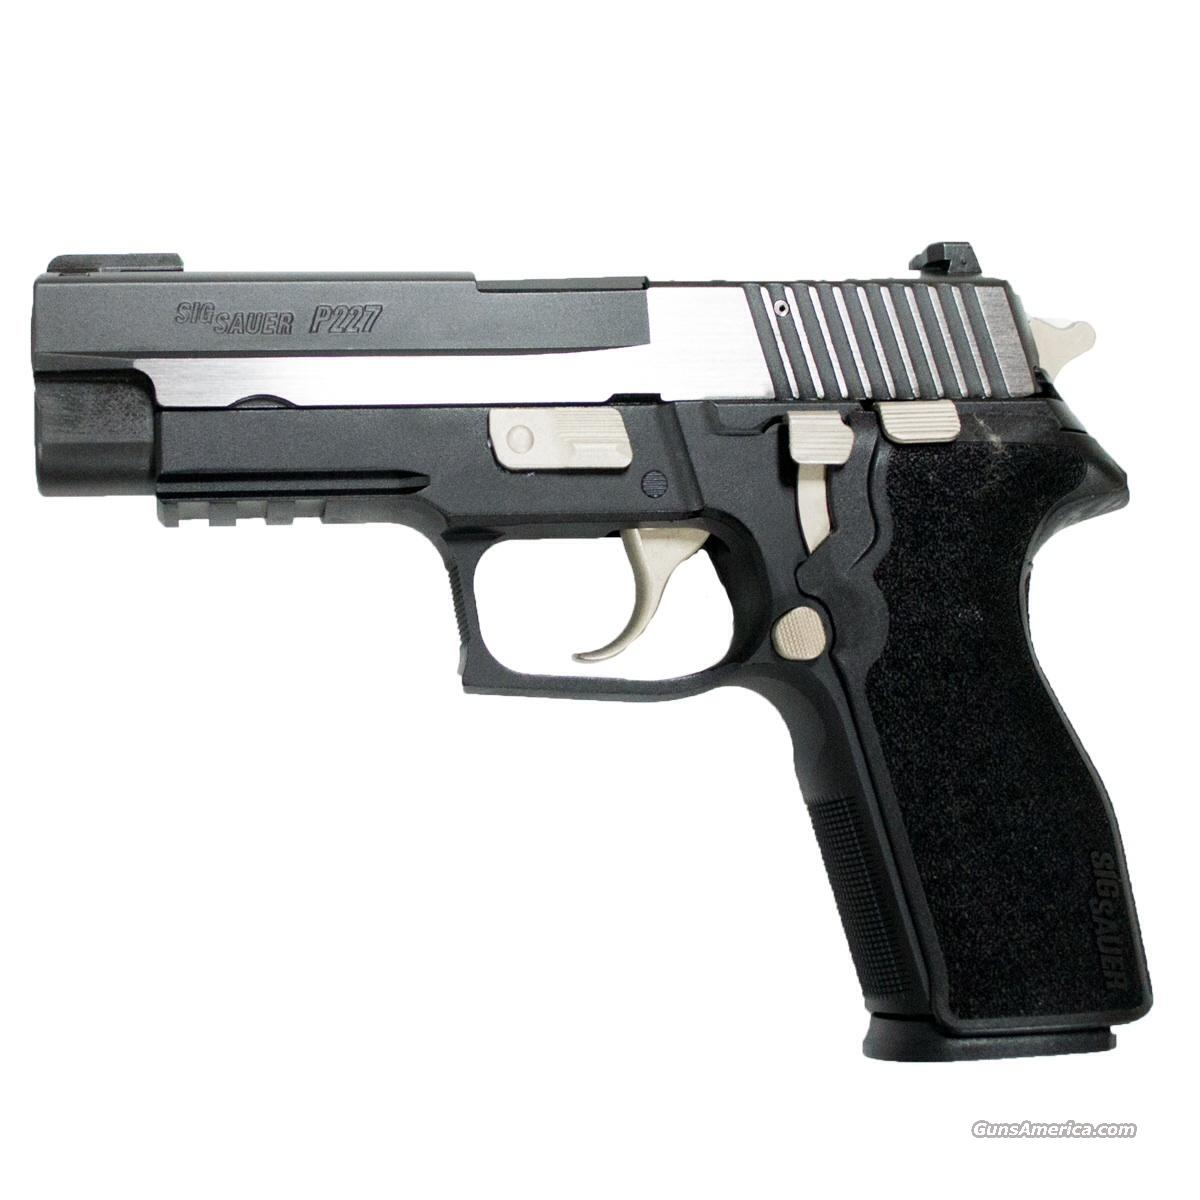 SIG SAUER 227R EQUINOX -2 10 rnd mags  Guns > Pistols > Sig - Sauer/Sigarms Pistols > Other